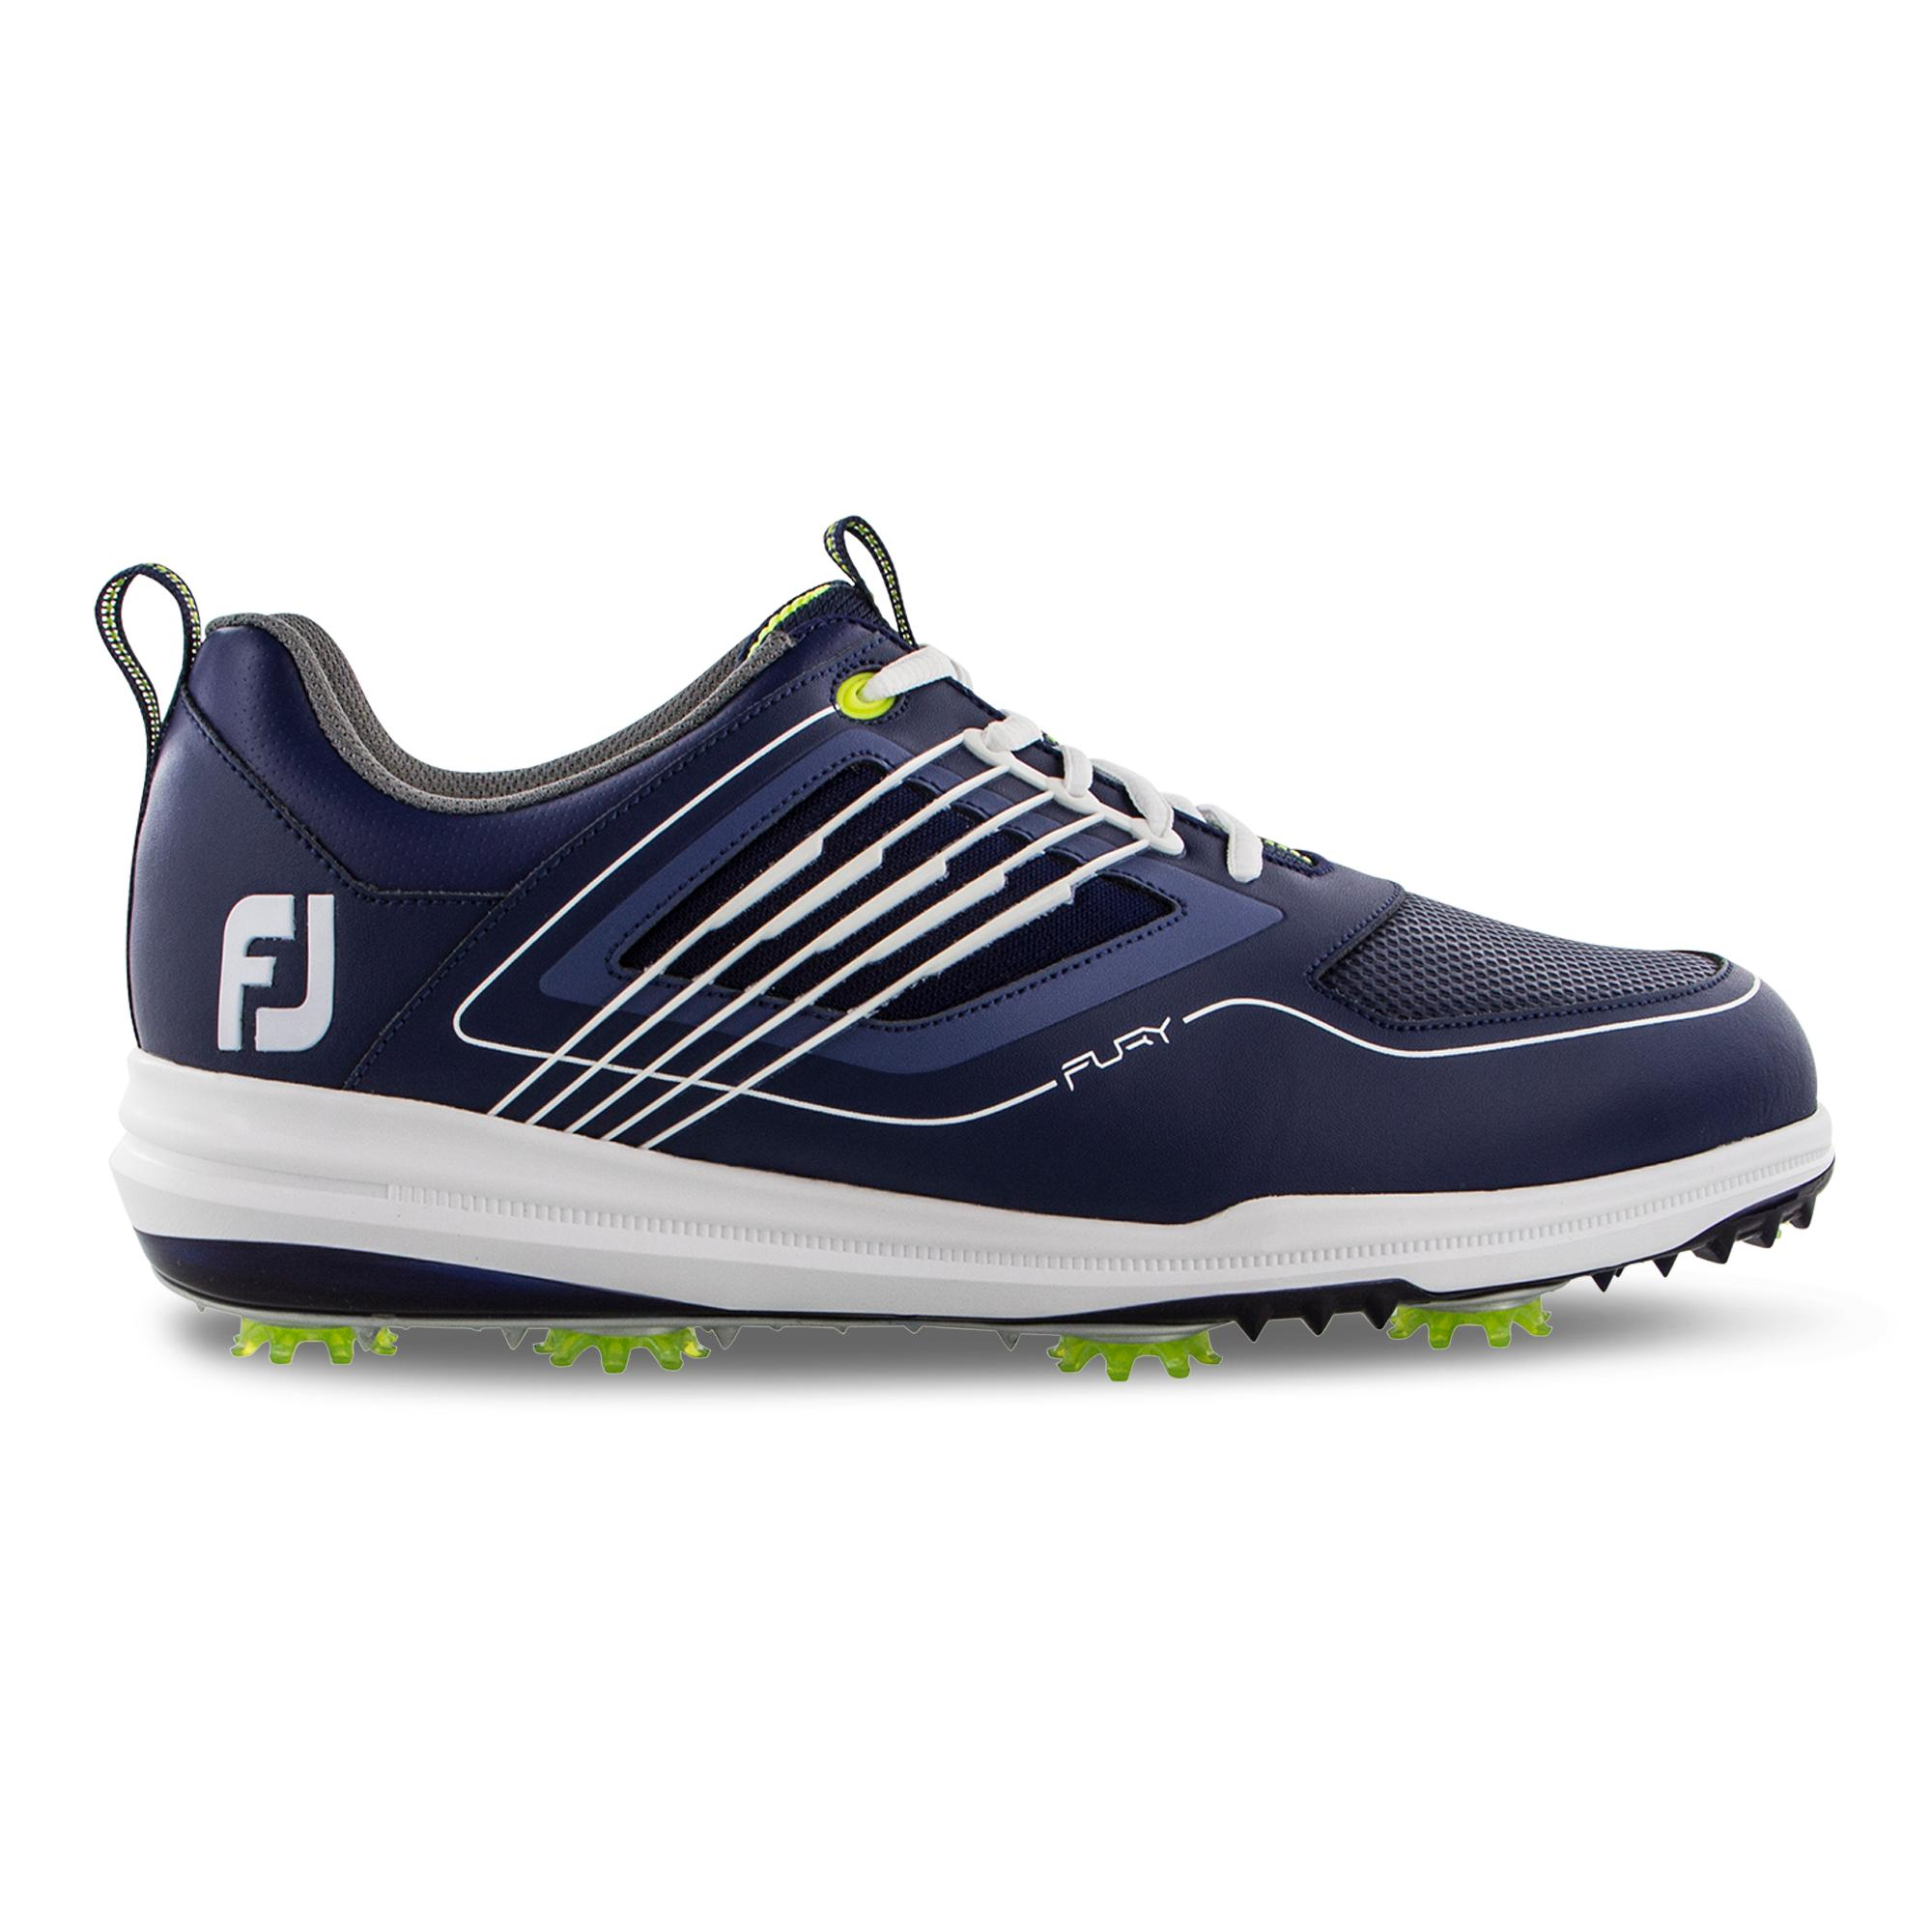 Men's Fury Spiked Golf Shoe - NAVY/WHITE/GREEN